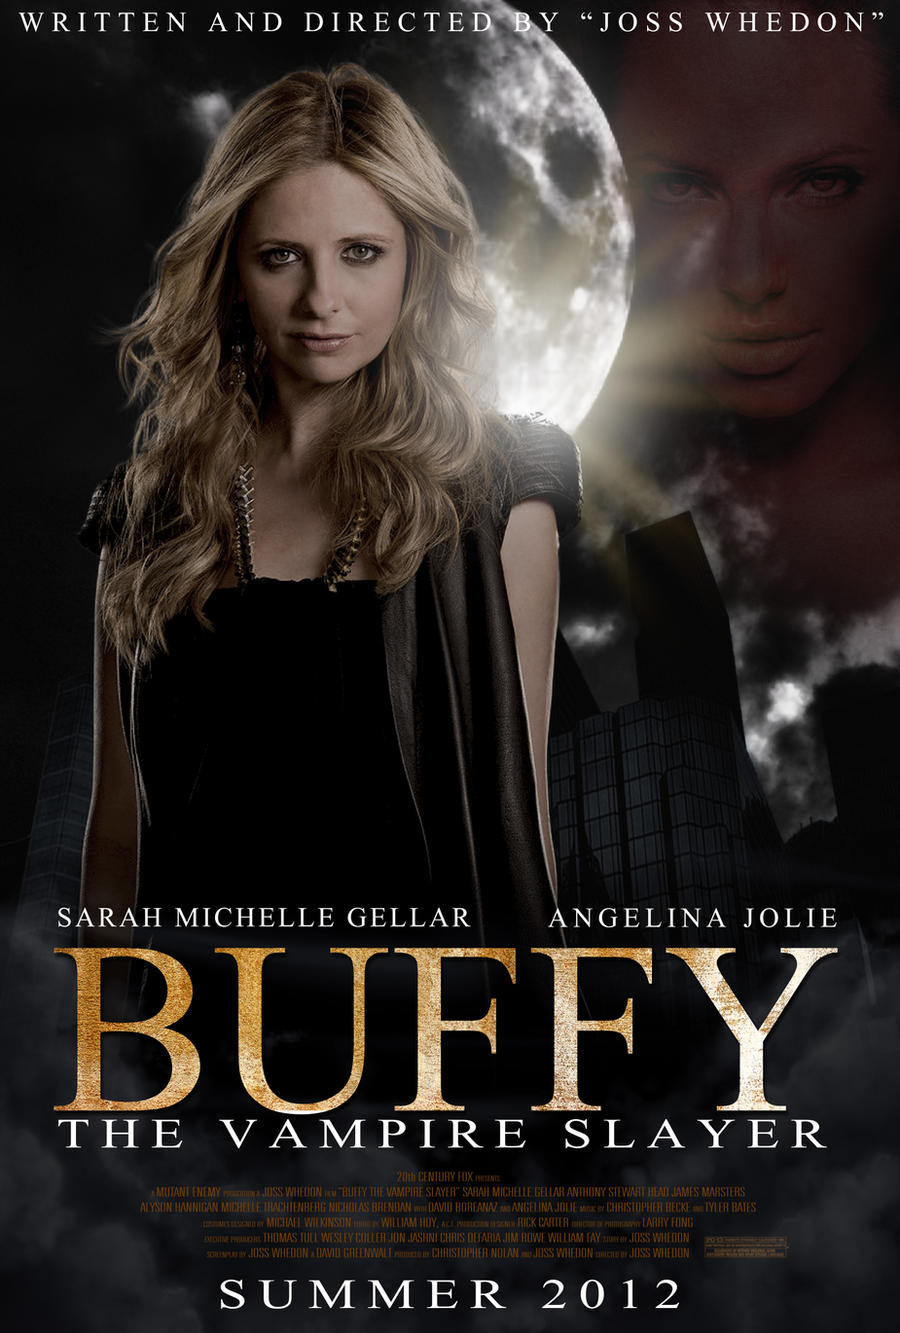 buffy movie poster by frostdusk on deviantart